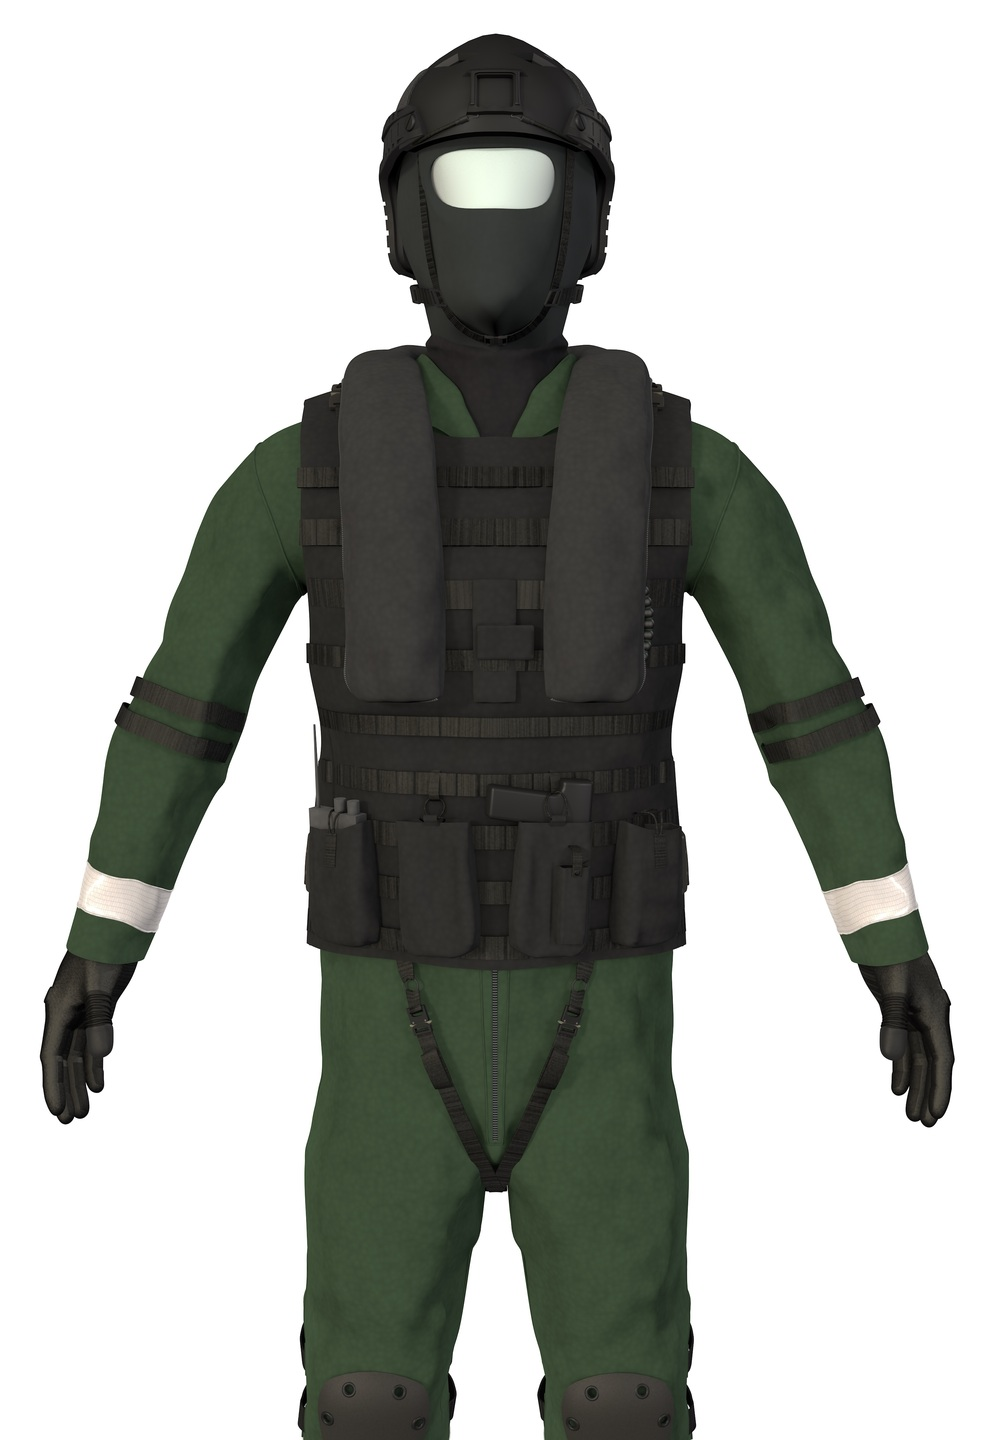 Special Forces With Life Jacket Close-Up 1.jpeg